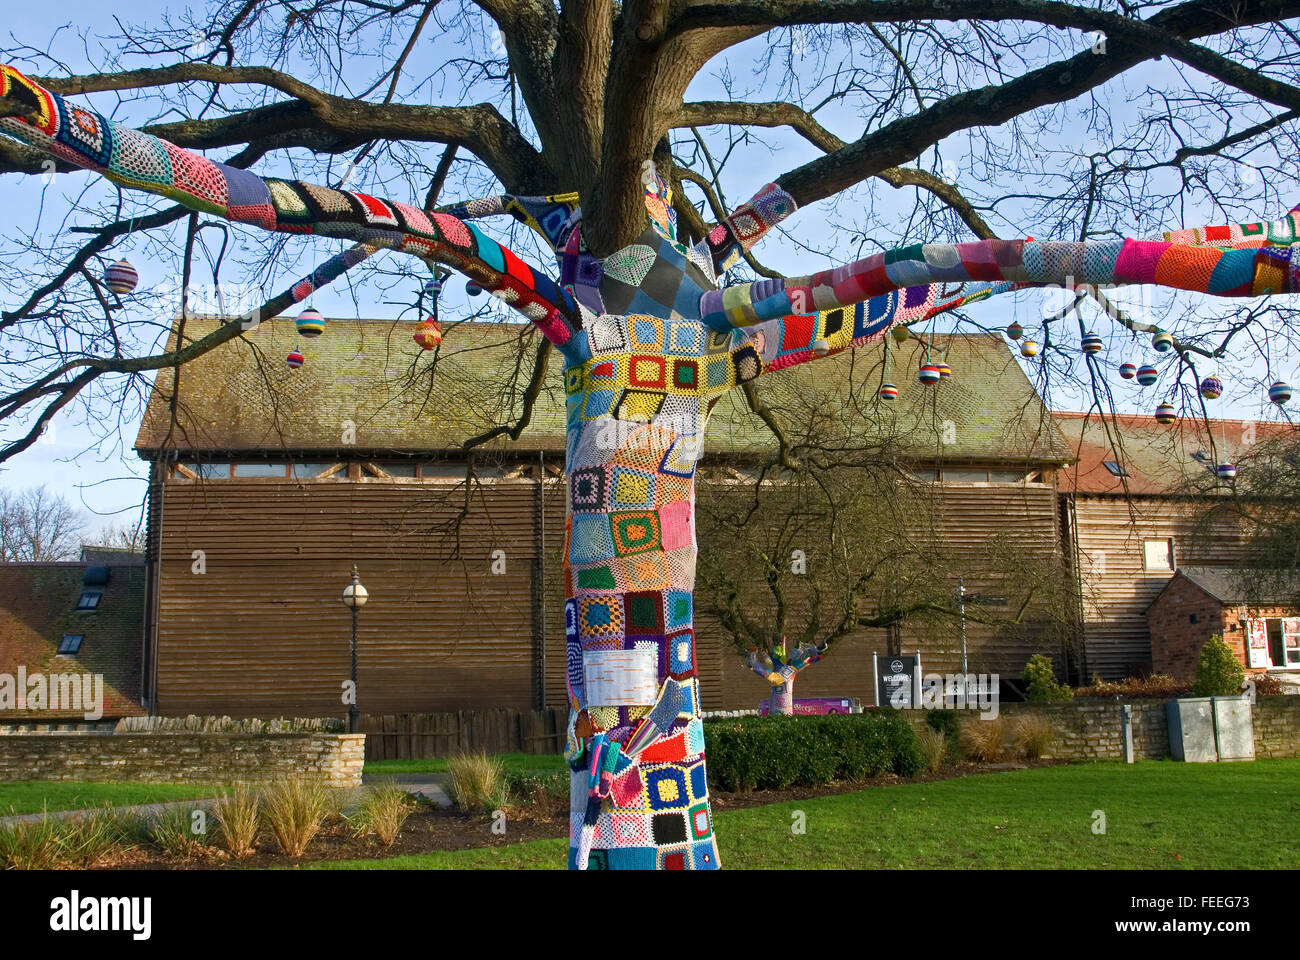 Remembering Tree in Bancroft Gardens in the centre of Stratford upon Avon - Stock Image